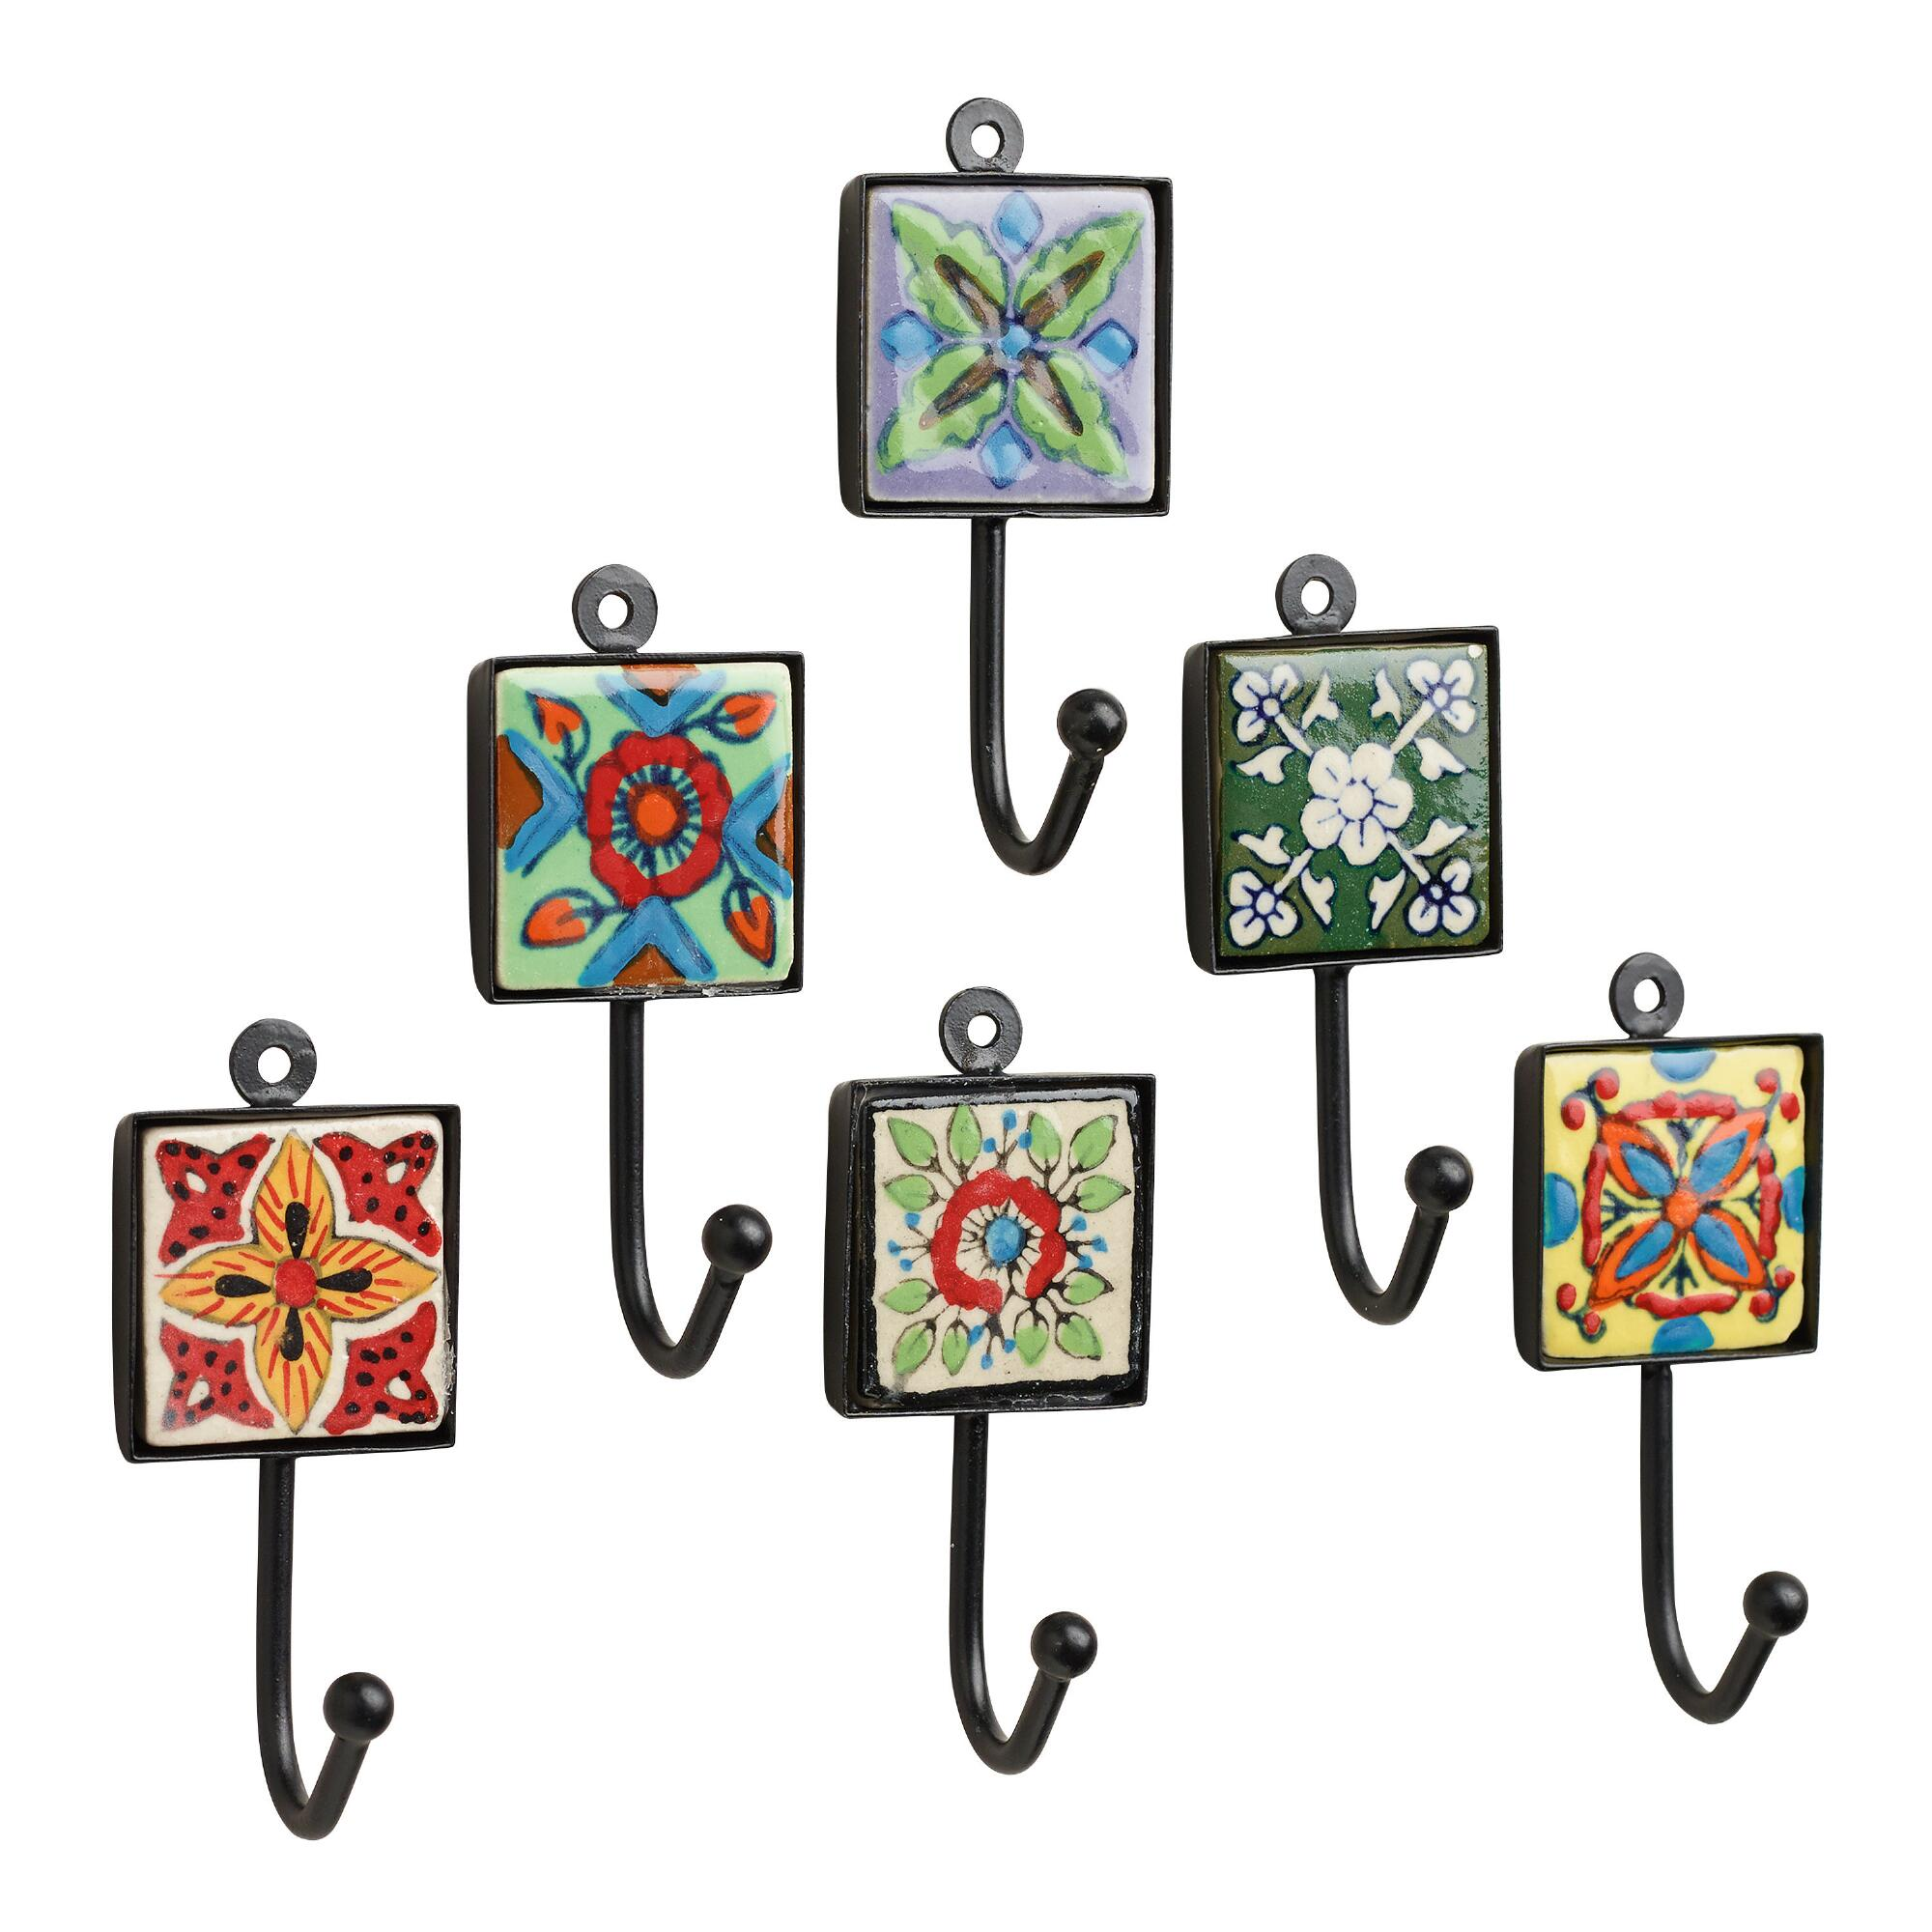 decoration pegs decorative how picture over the hangers agate and of size accessories hat robe rail create modern rack towels bedroom his hanger brushed entryway door hers back wall towel nickel decor full hooks chrome bathroom to hook for a